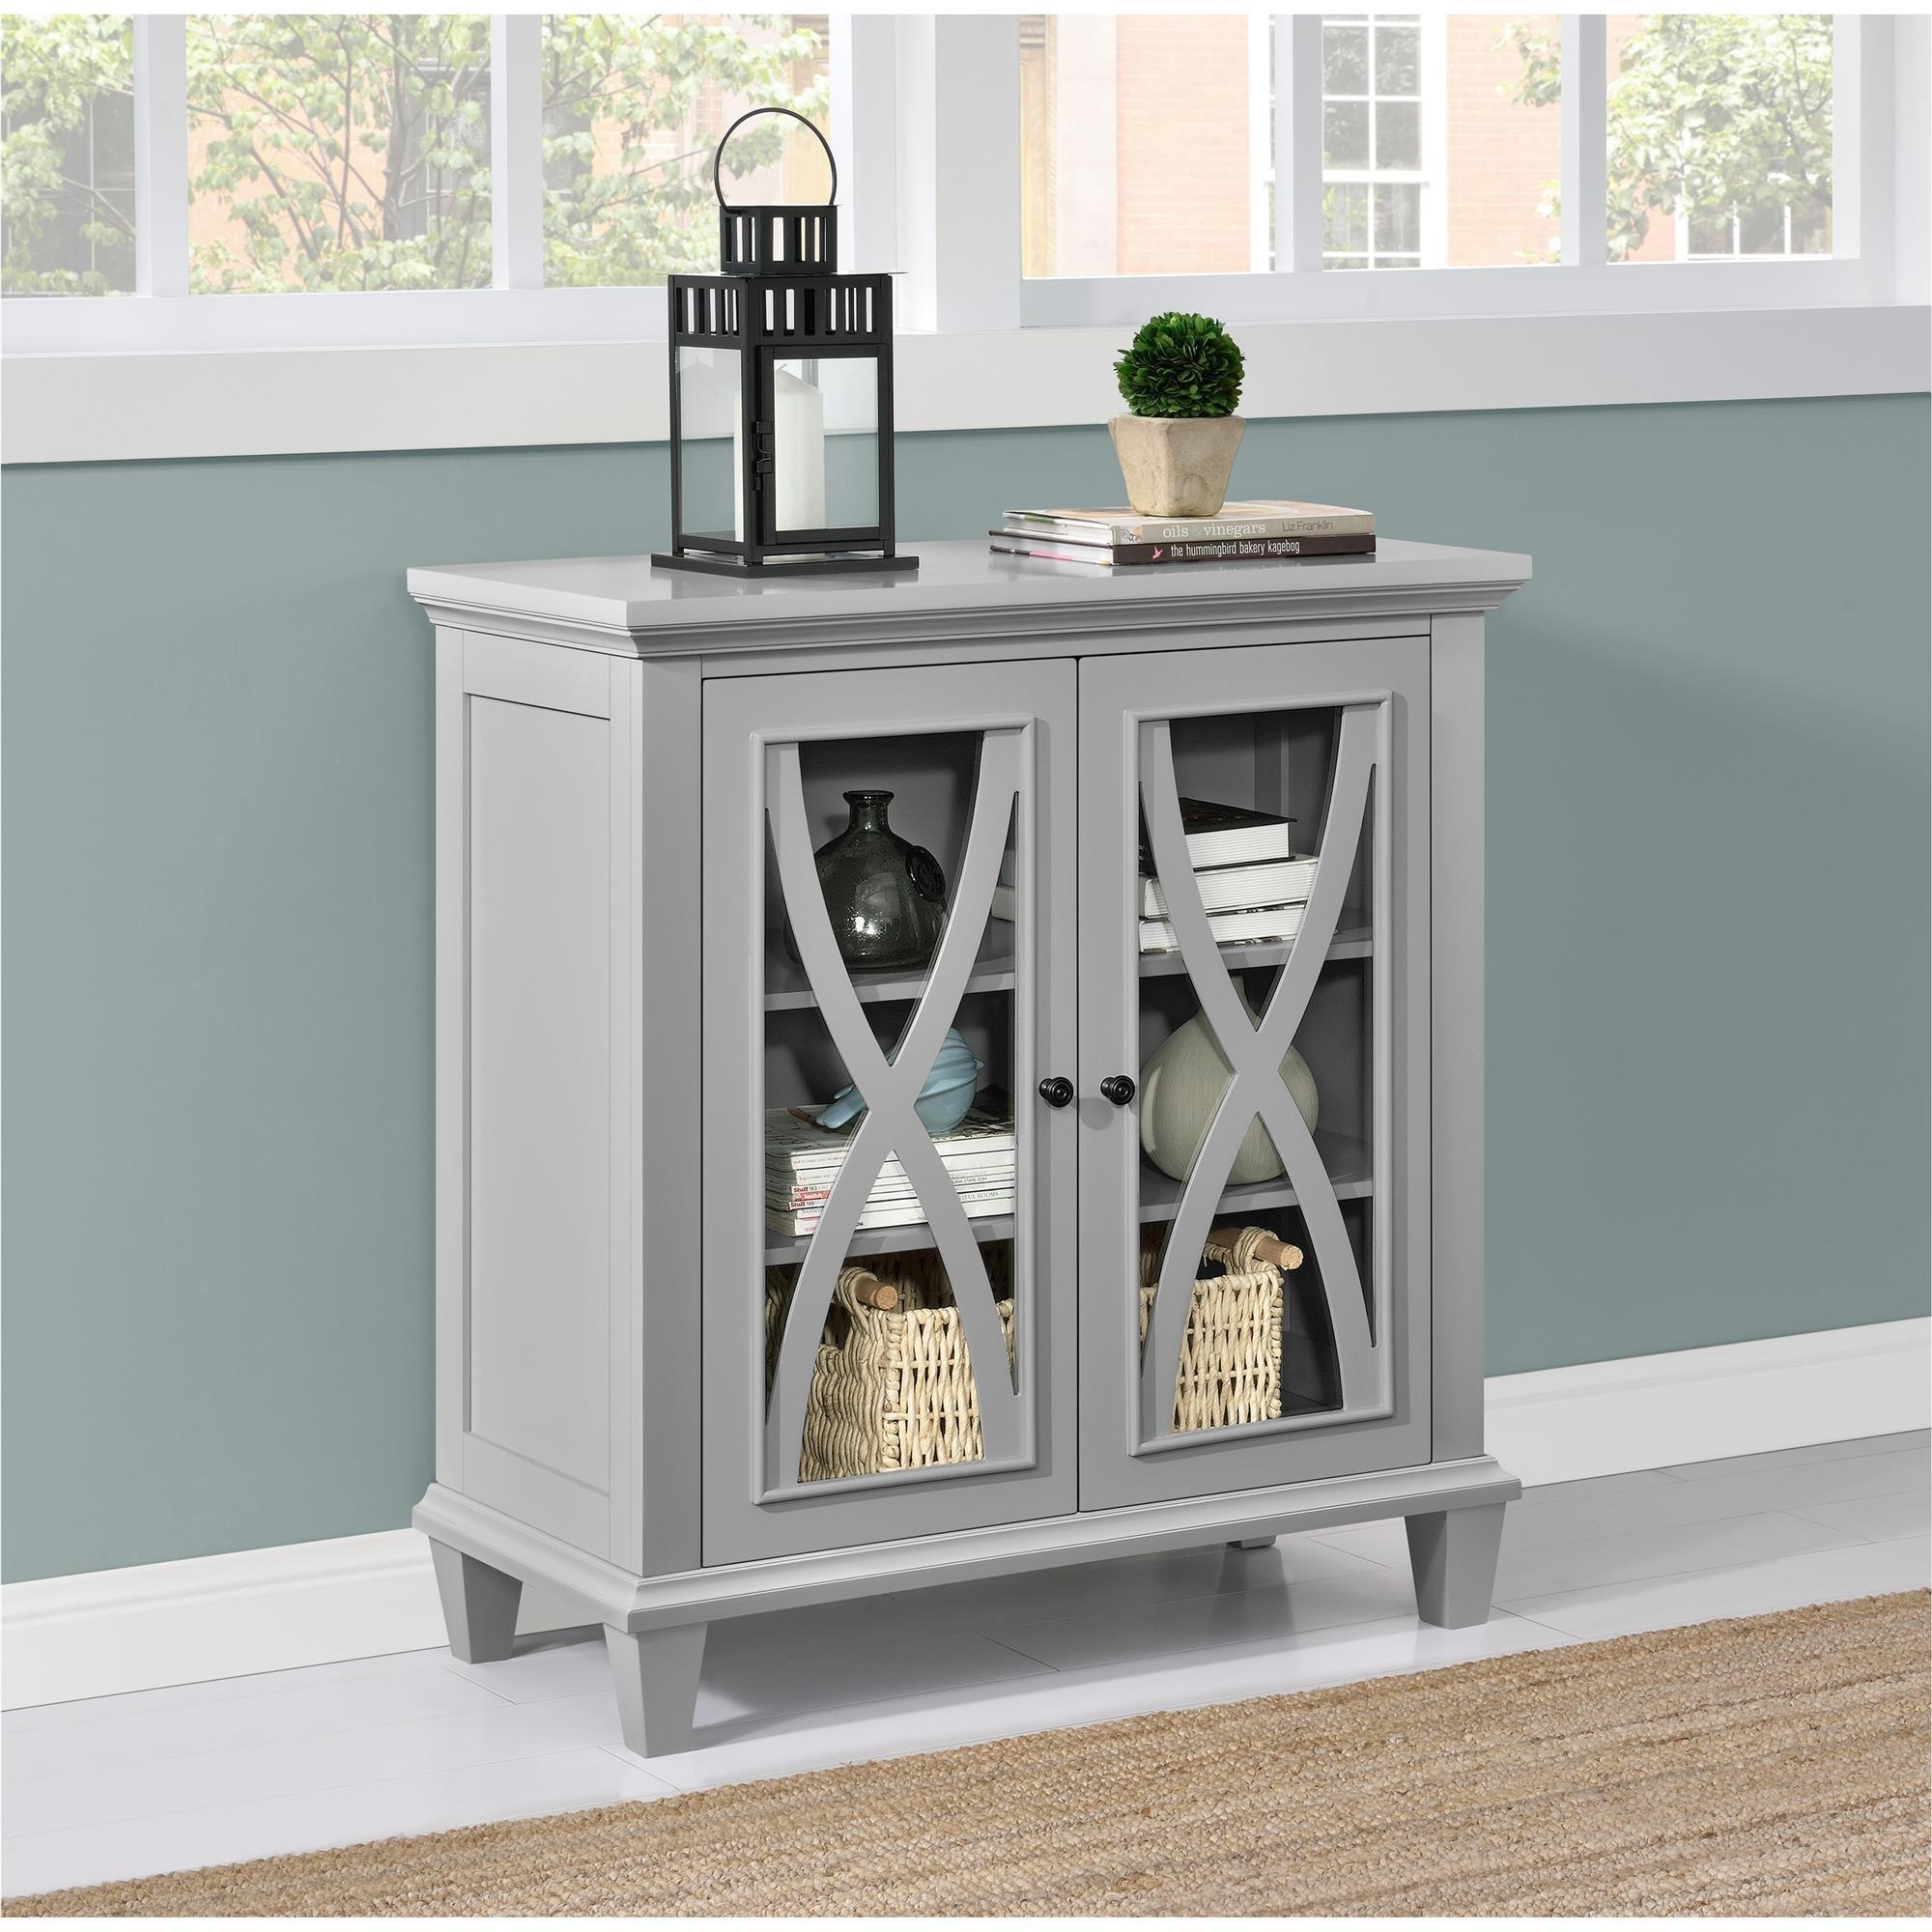 Shop The Gray Barn Chestnut Grove Accent Cabinet - On Sale - Free throughout Oil Pale Finish 4-Door Sideboards (Image 26 of 30)